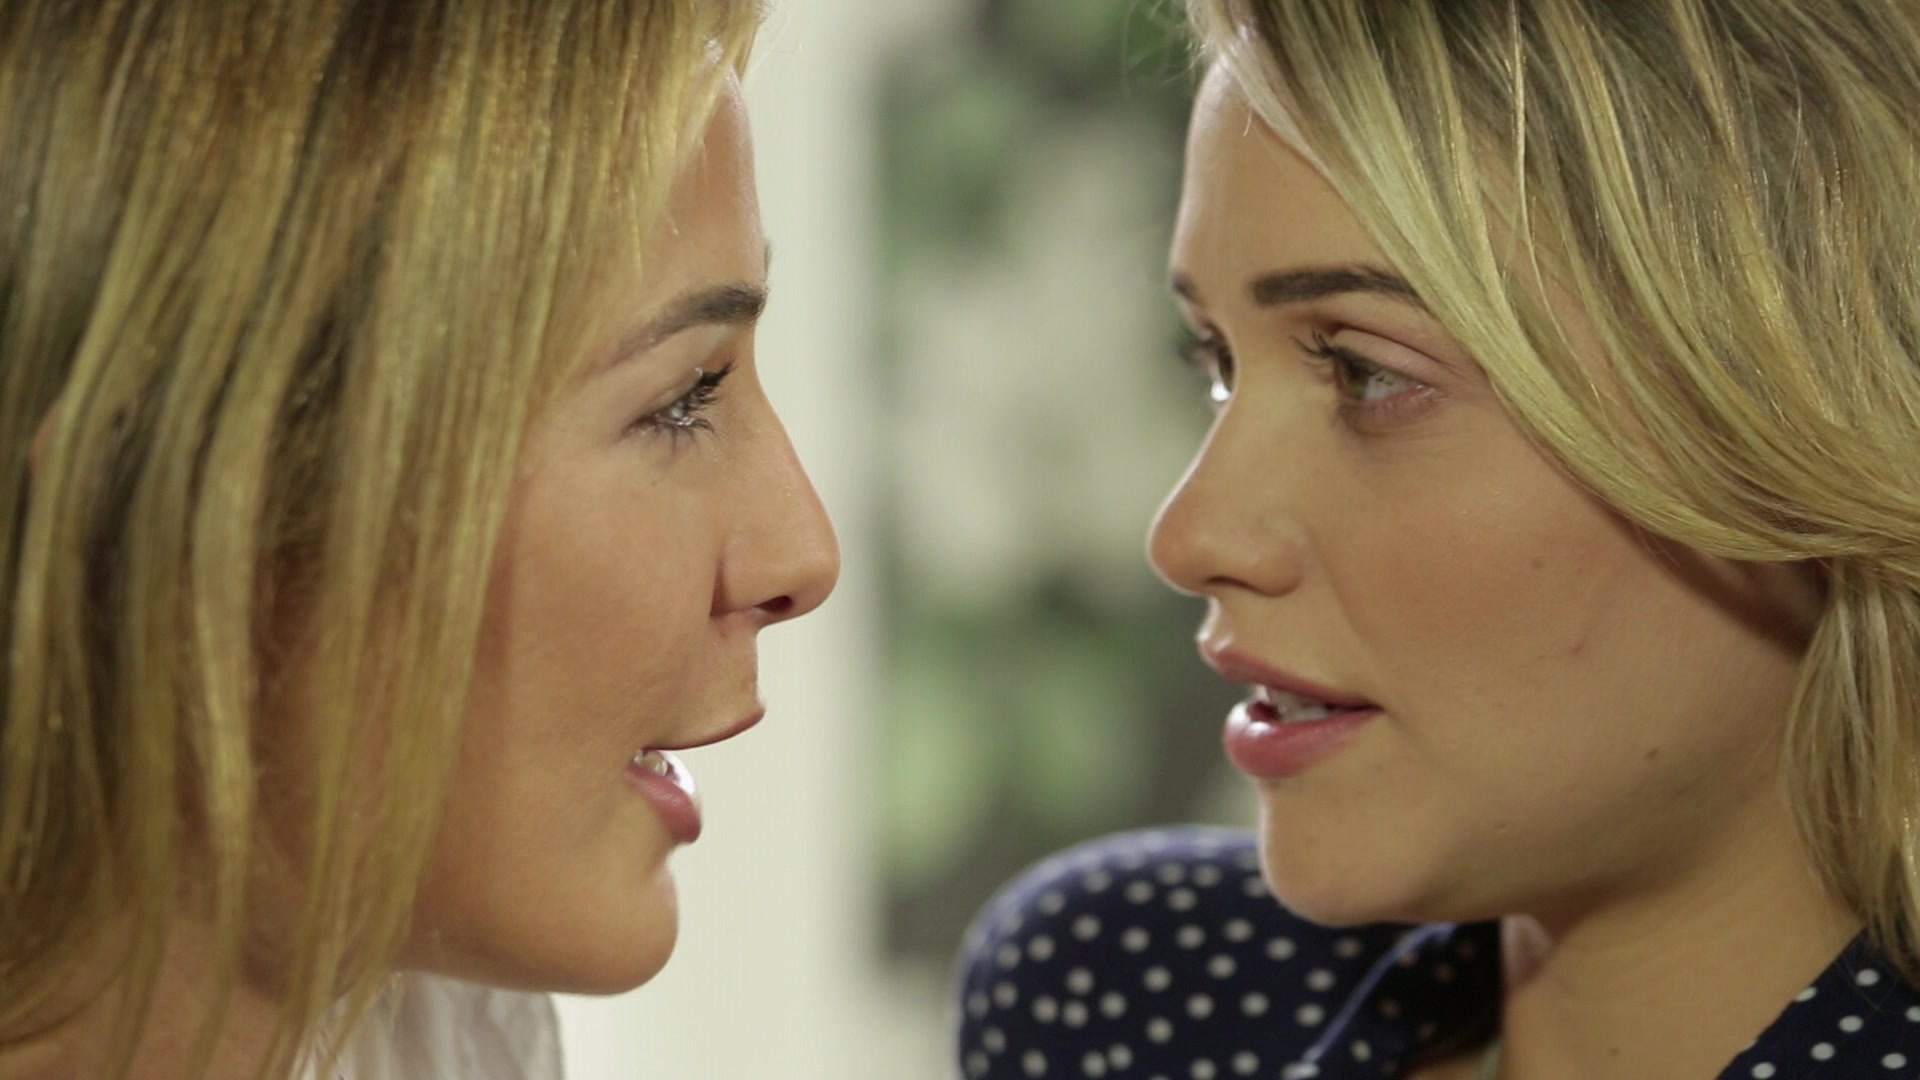 Scene with Mia Malkova and Blair Williams - image 10 out of 20